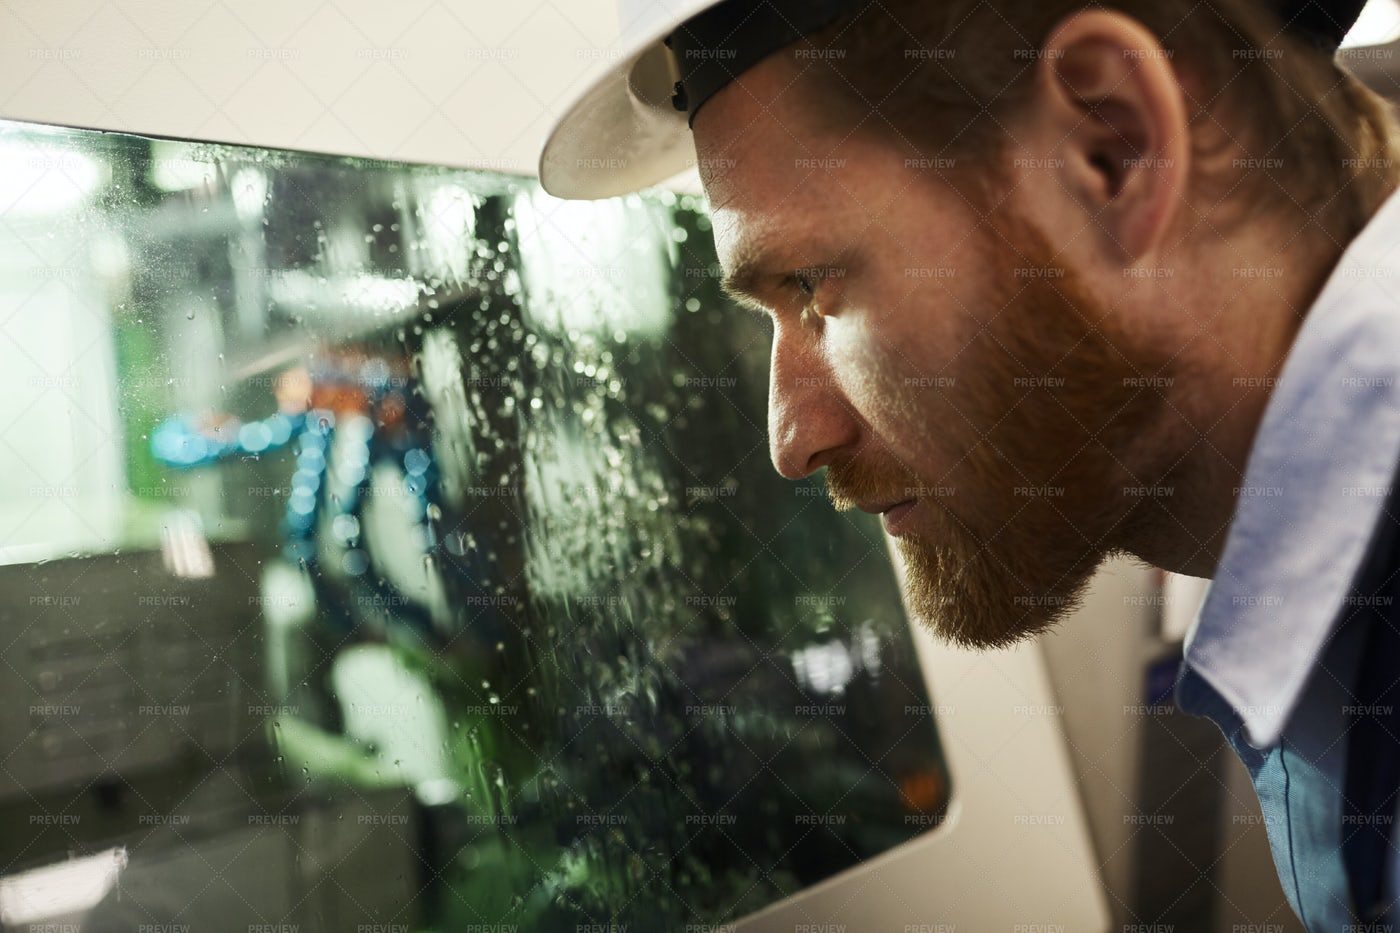 Closely Monitoring CNC Cleaning: Stock Photos